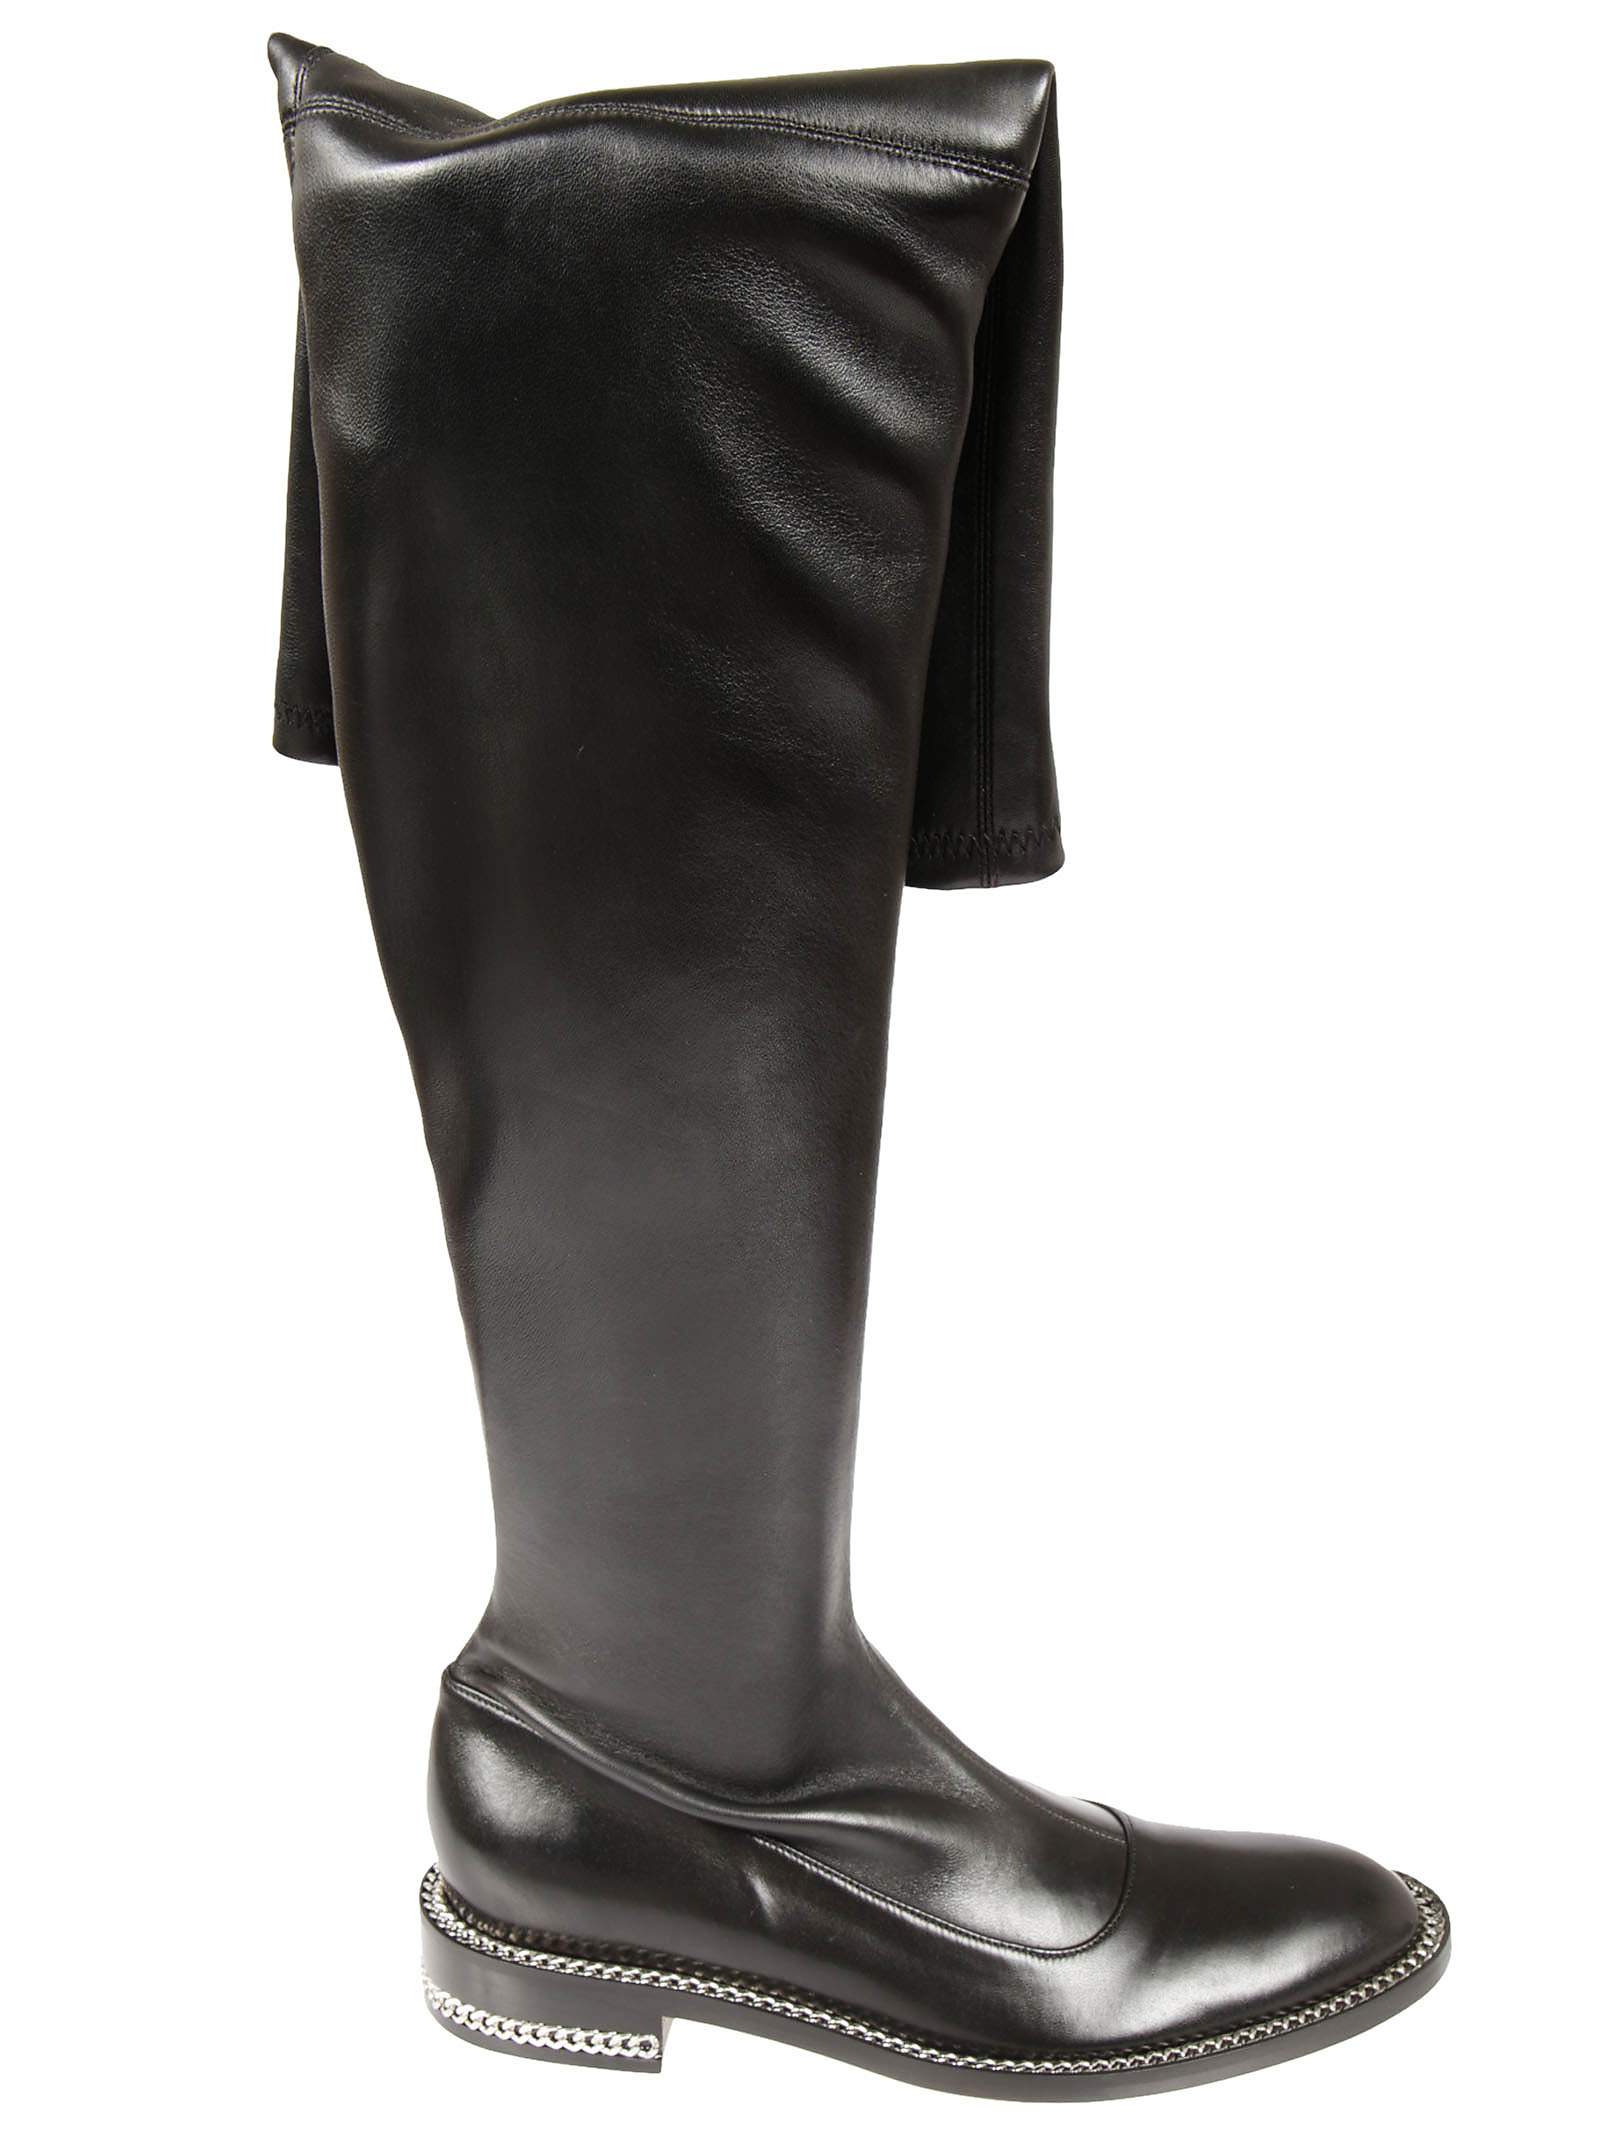 Givenchy Givenchy Stretch Over the Knee Boots